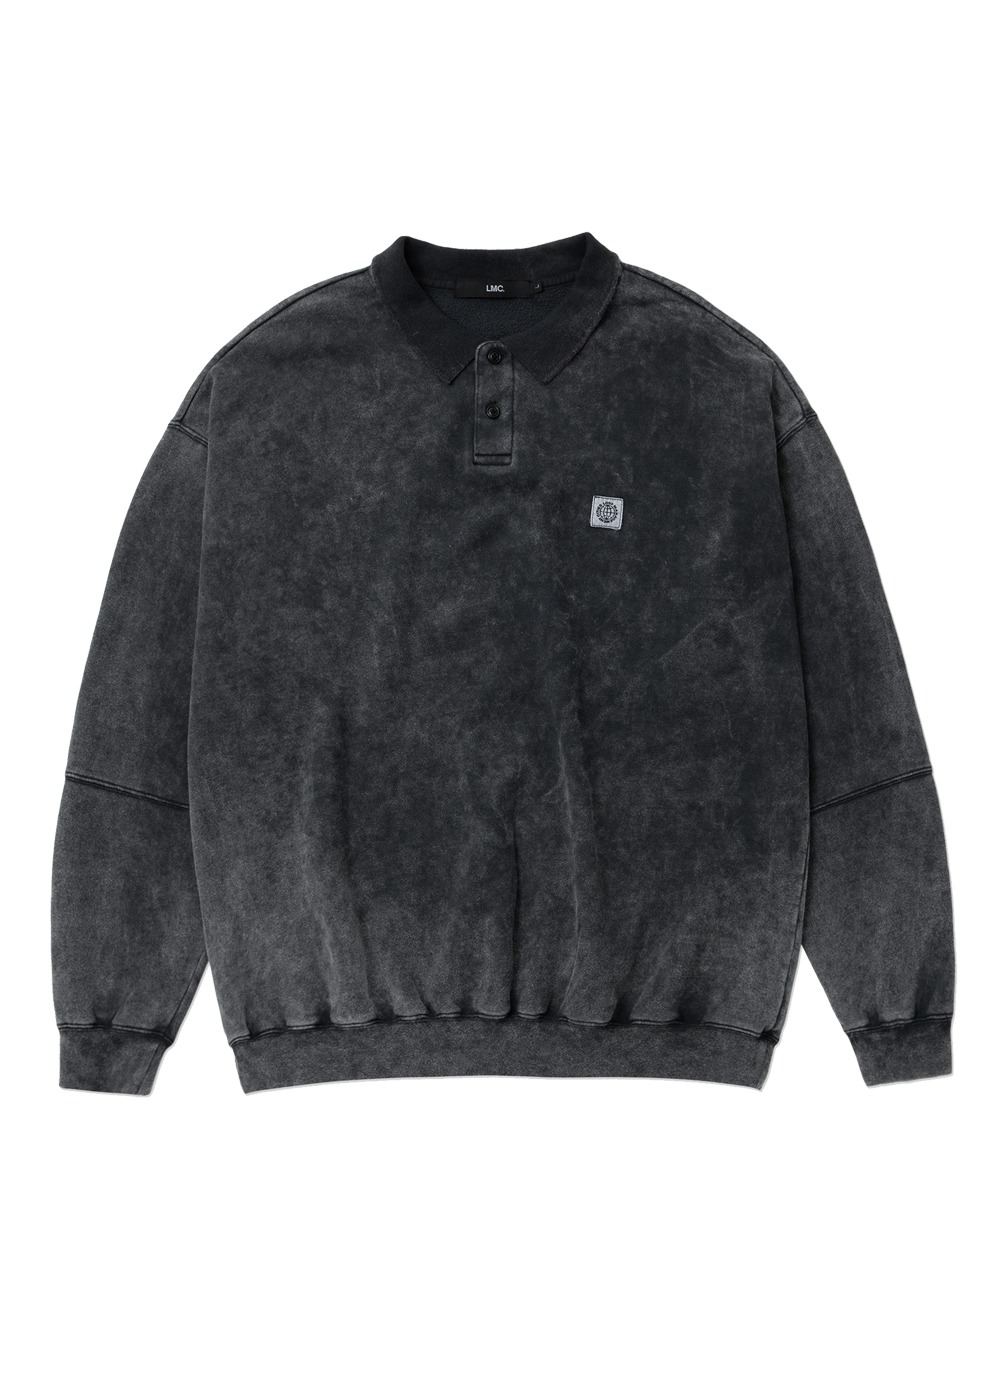 LMC ACID WASH OVERSIZED COLLAR SWEATSHIRT charcoal